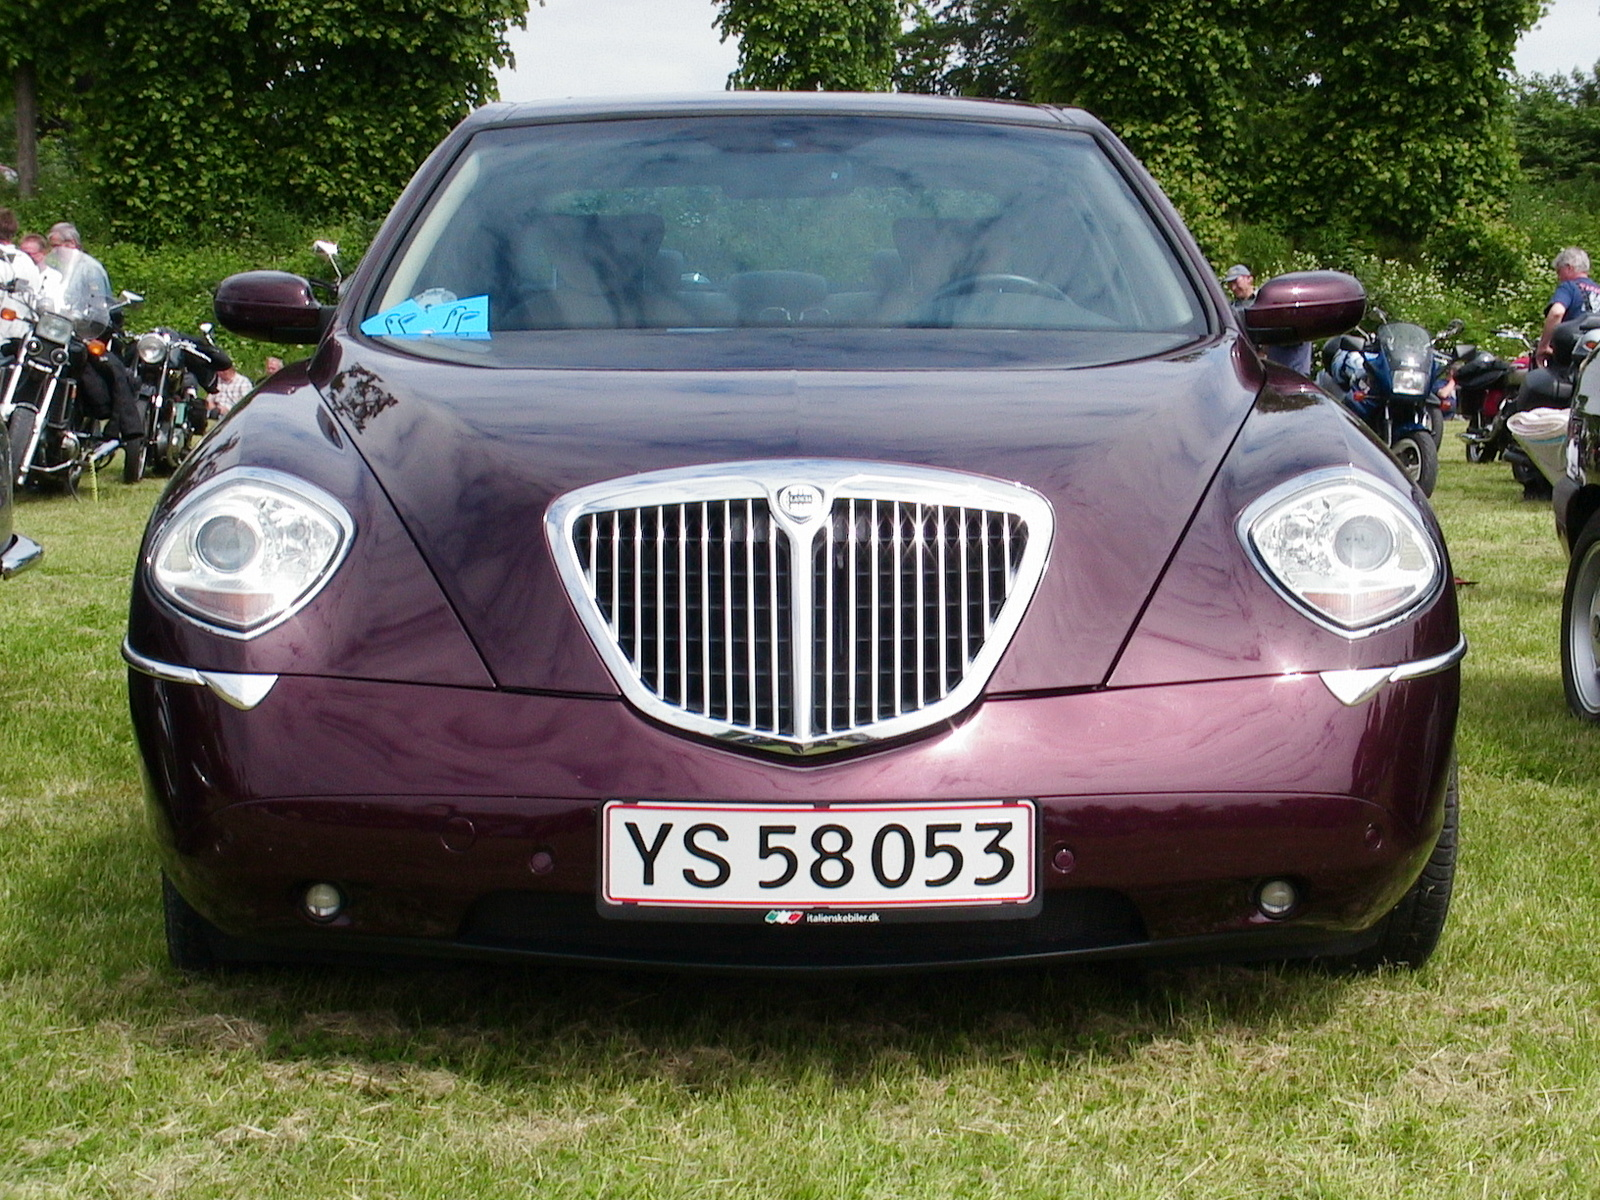 2007 Lancia Thesis – pictures, information and specs - Auto-Database.com